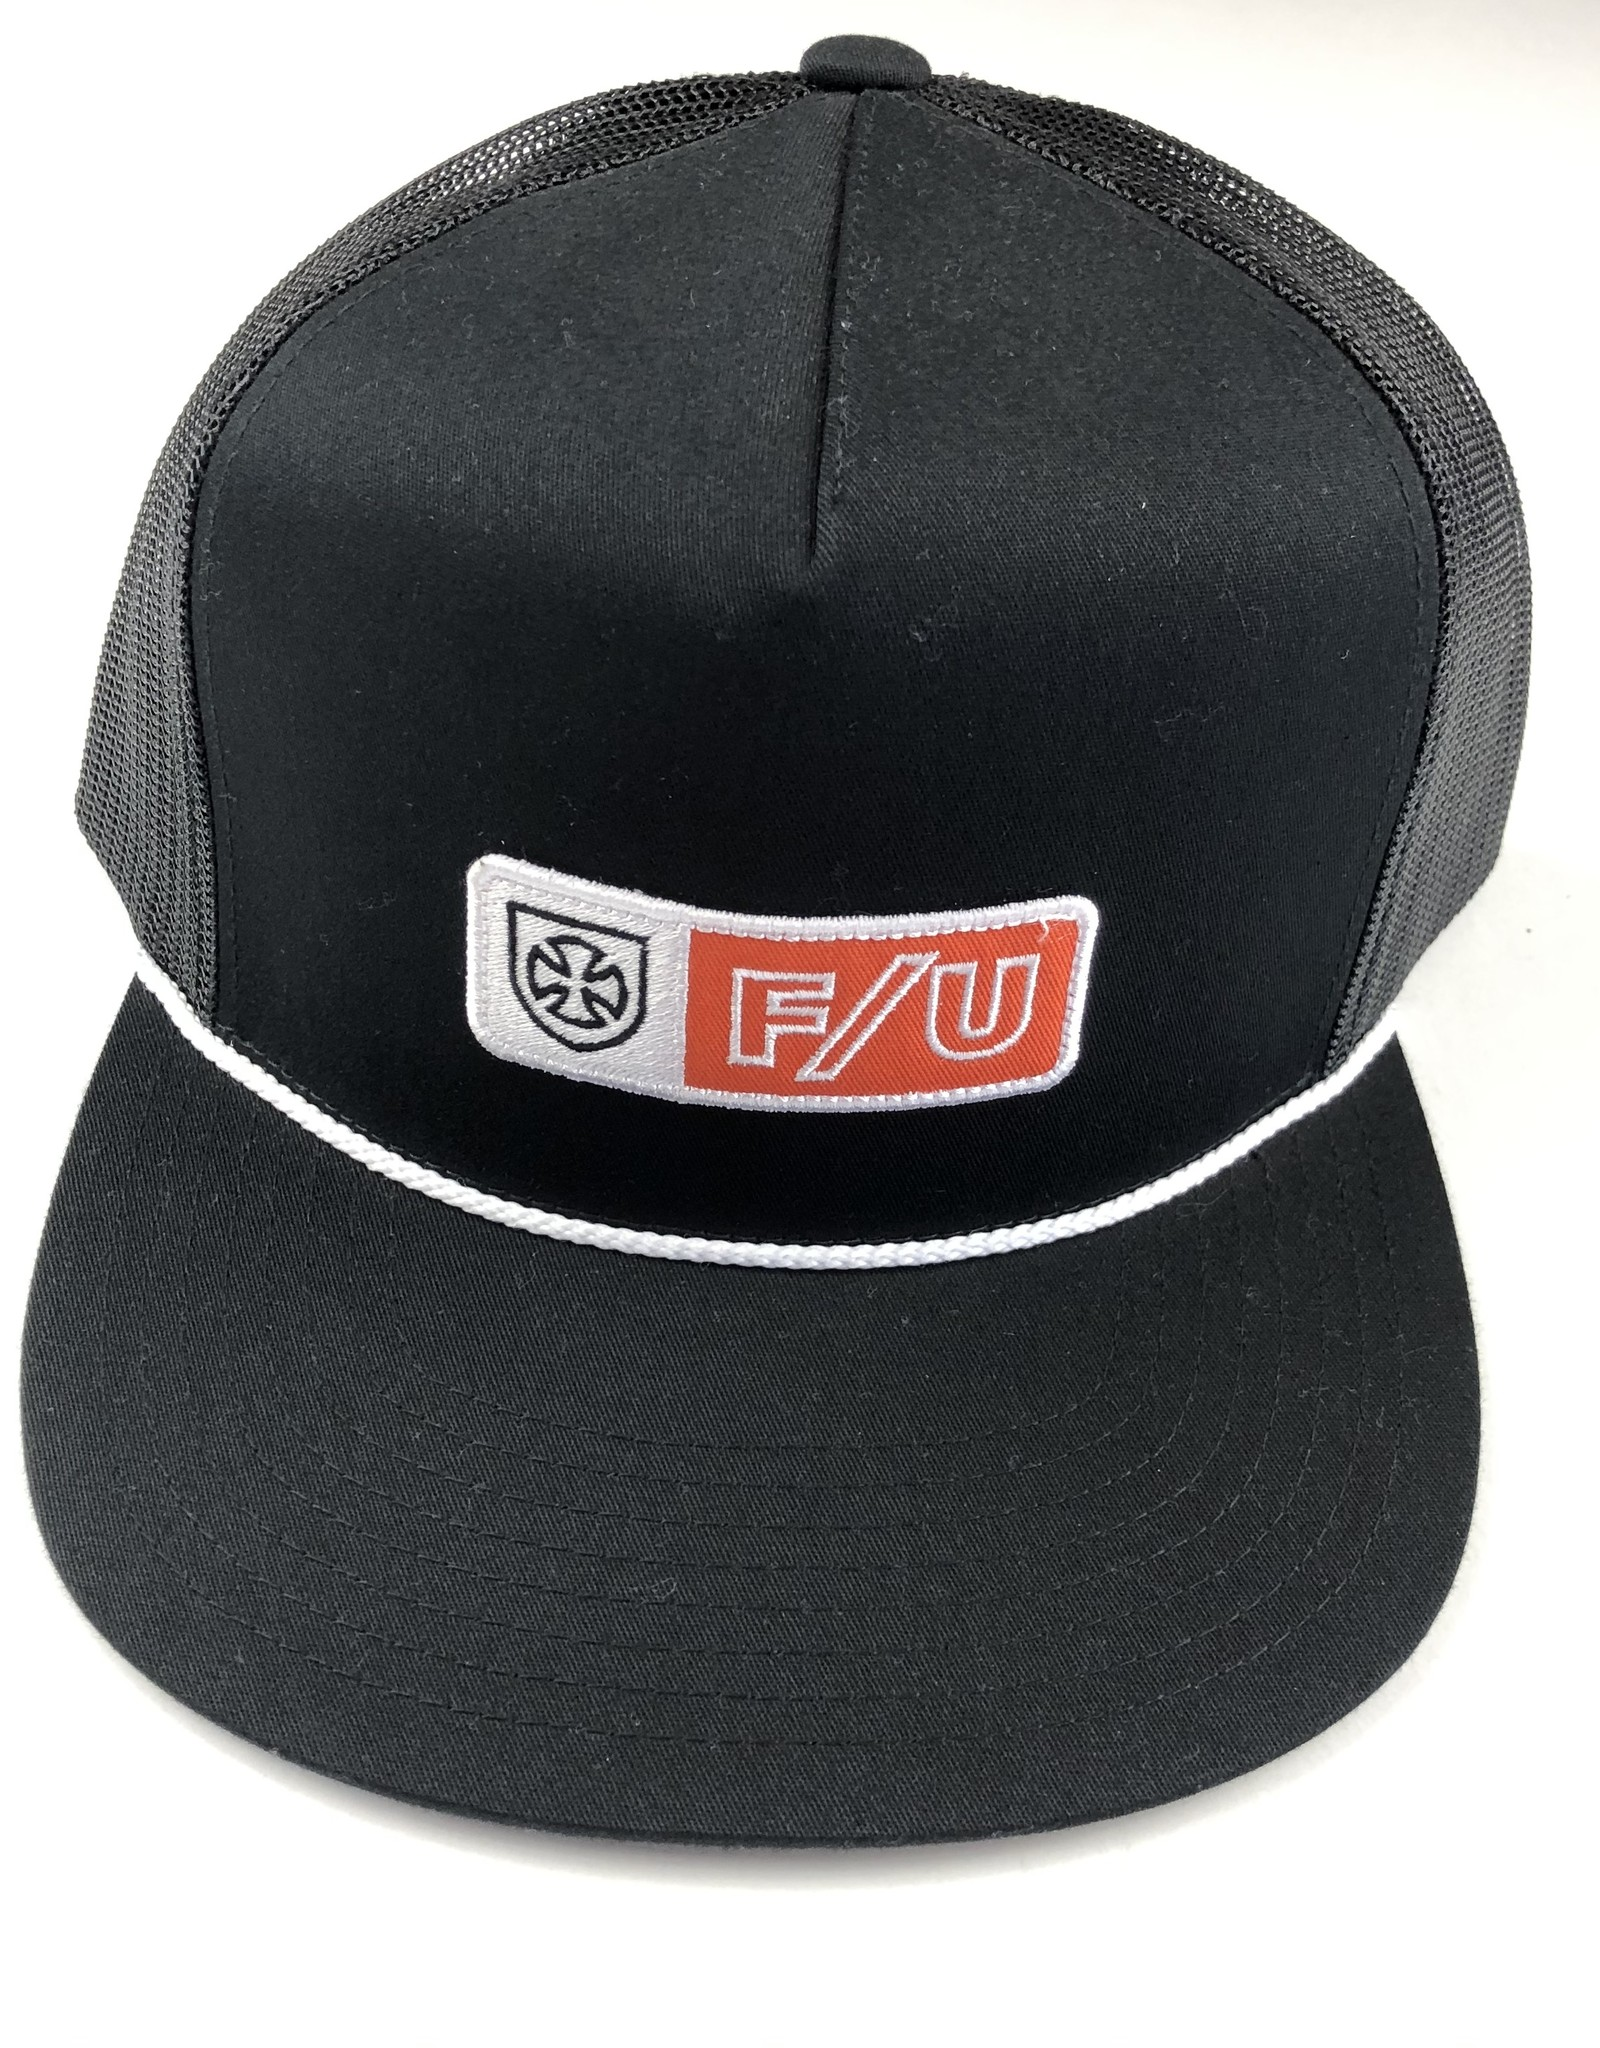 BRIXTON BRIXTON TURNPIKE MESH INDY HAT - (ALL COLORS)